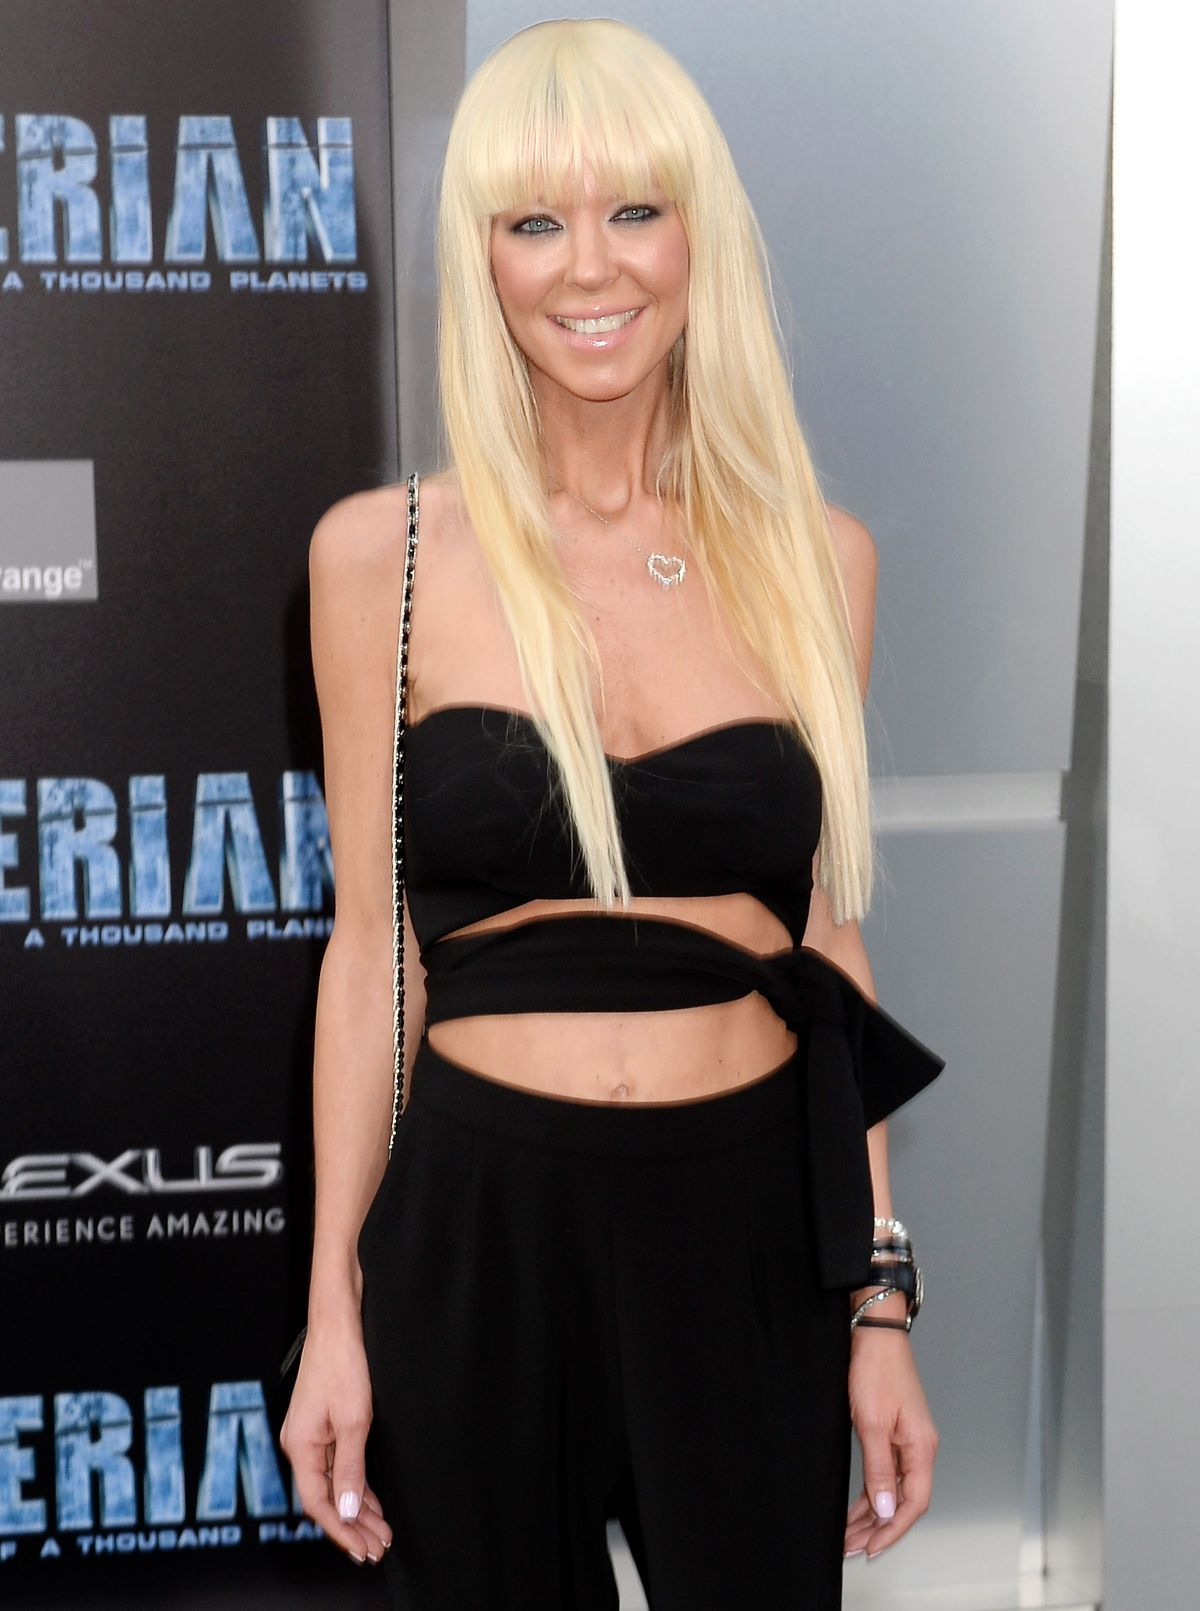 TARA REID at Valerian and the City of a Thousand Planet Premiere in Hollywood 07/17/2017